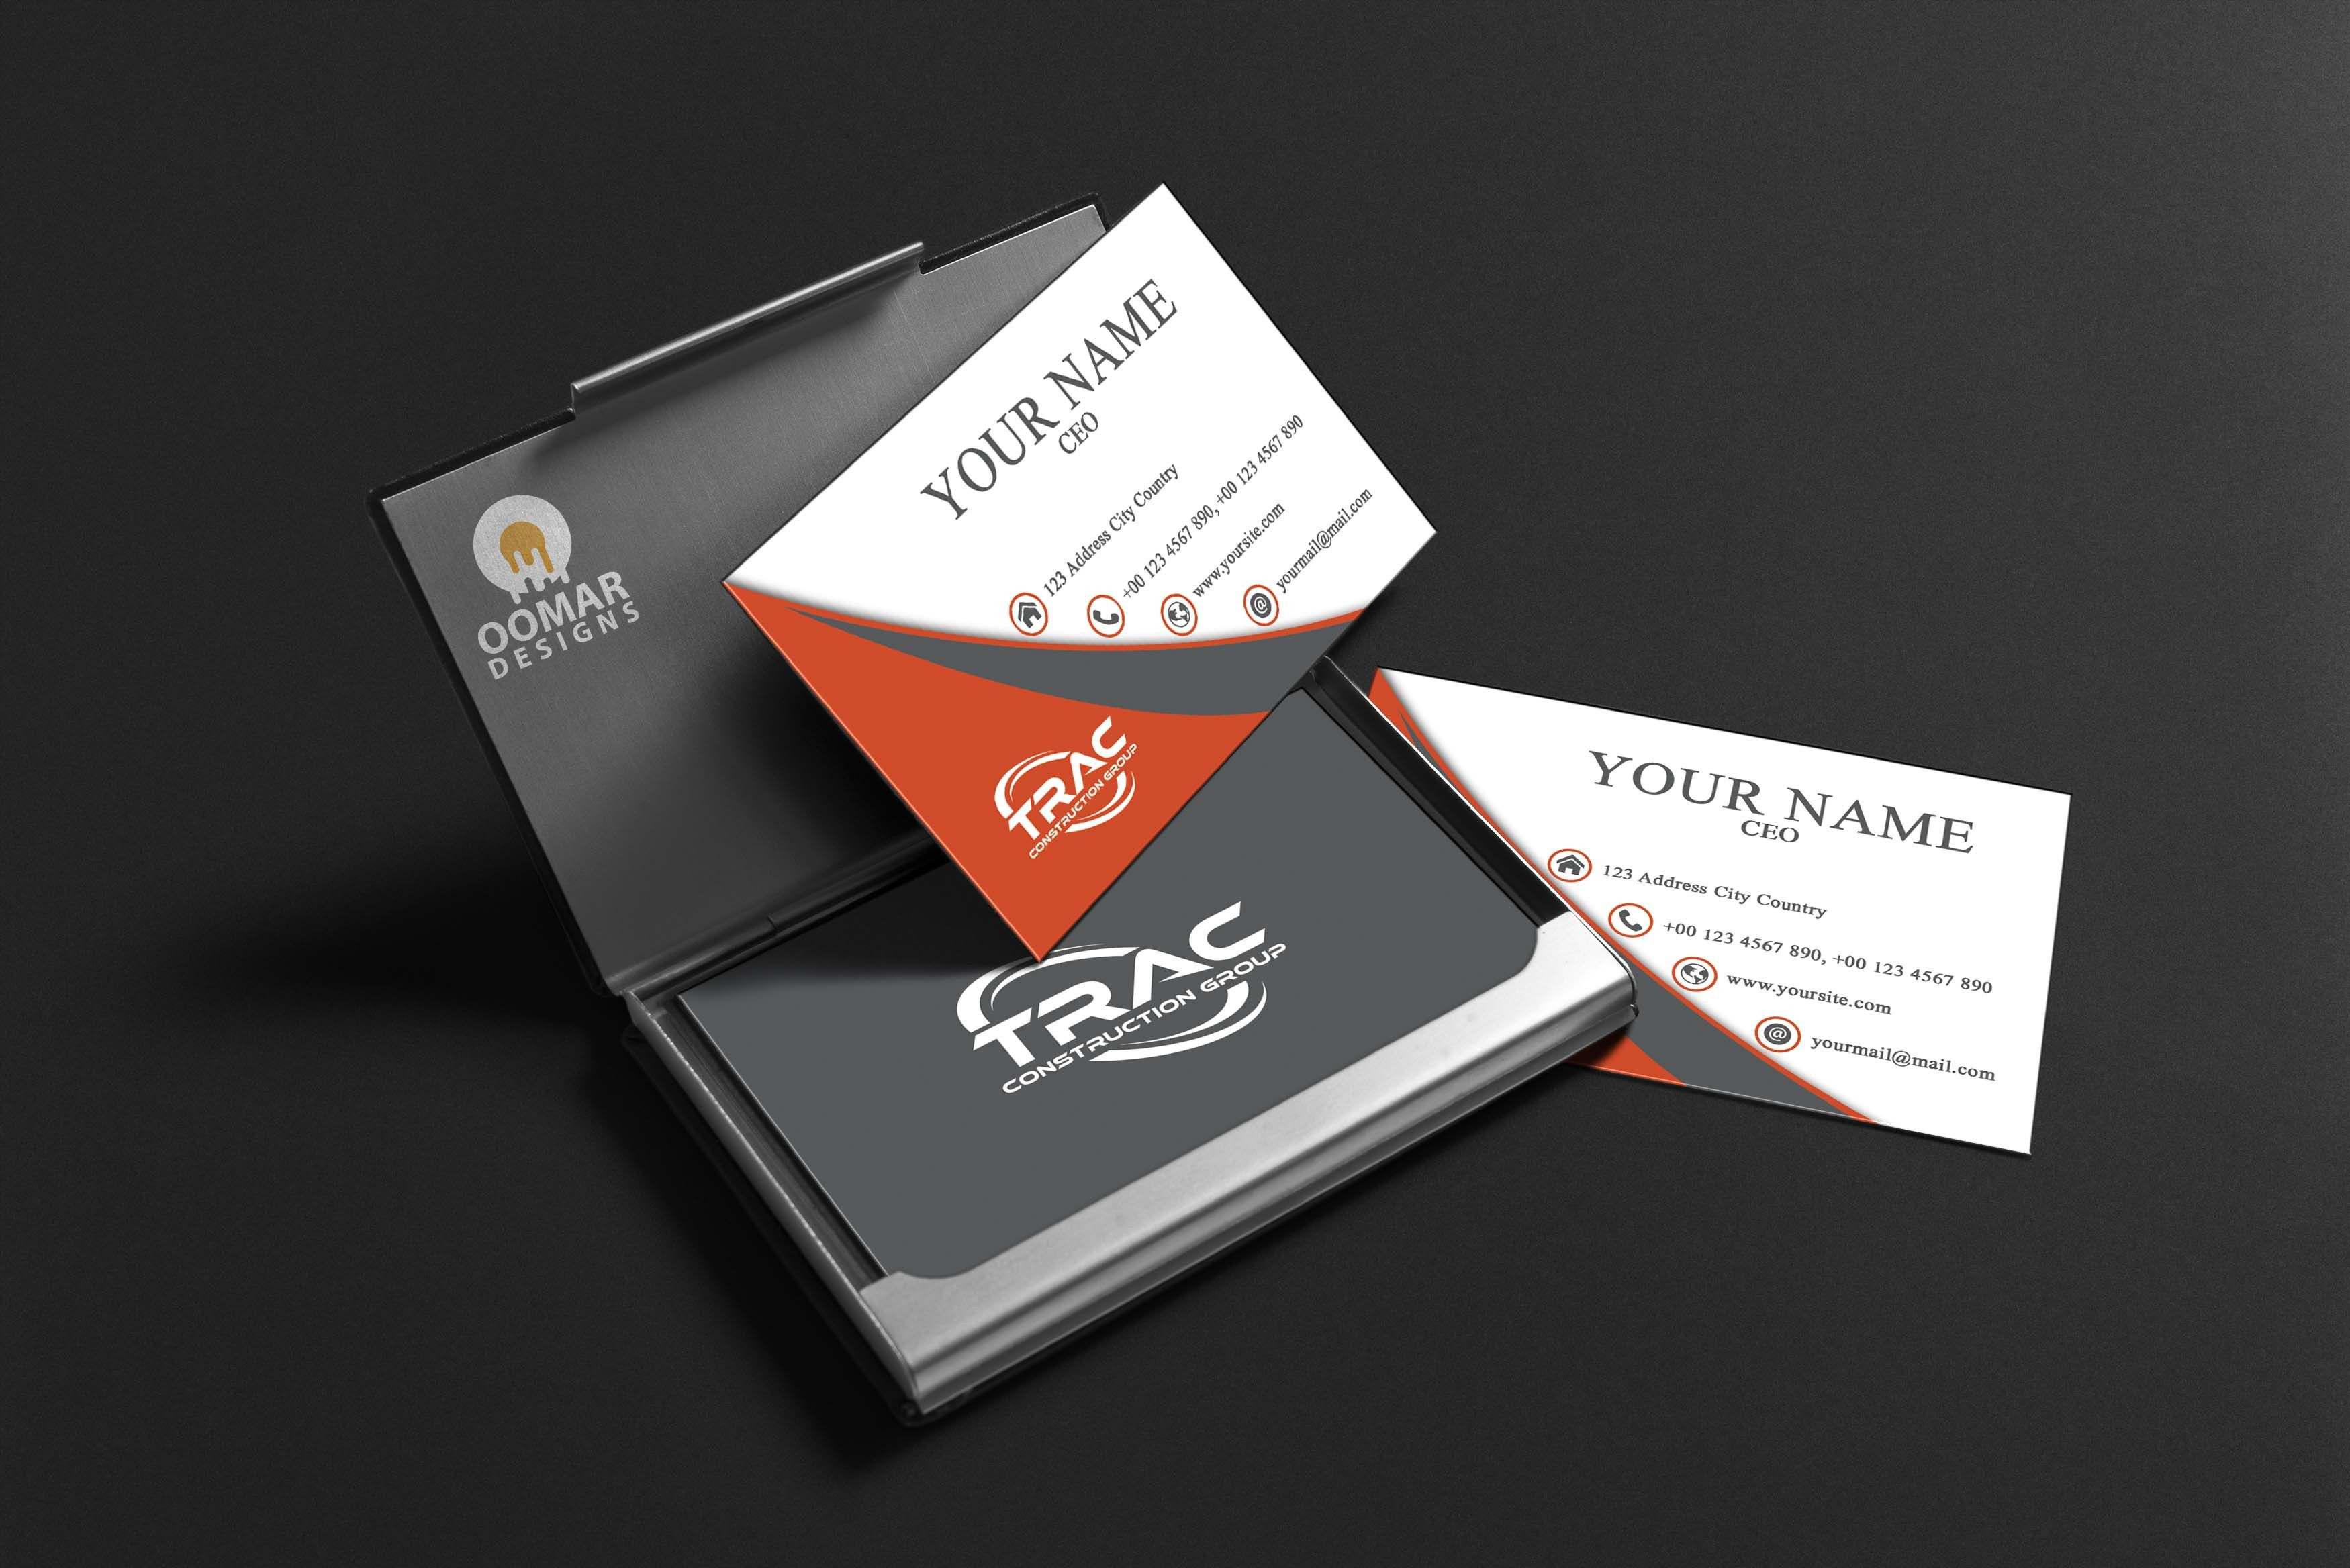 2 Sided Business Card Template Word Business Card Template Word Double Sided Business Cards Glossy Business Cards